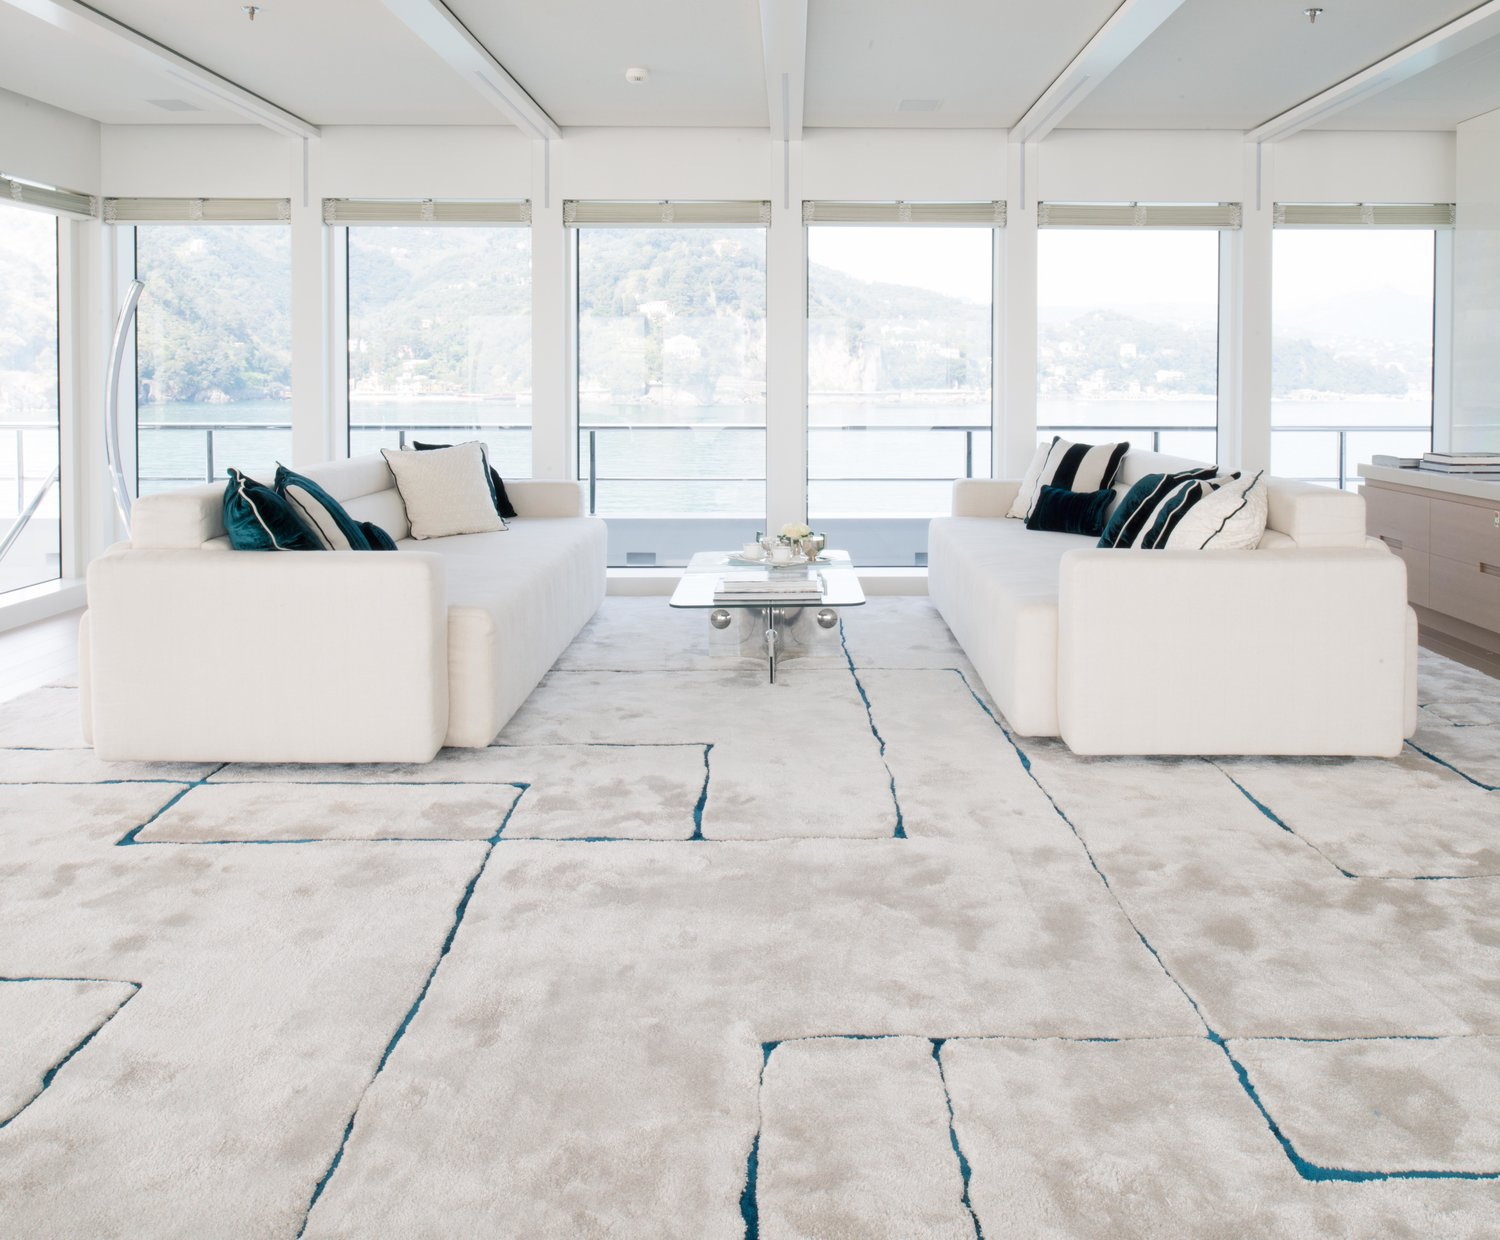 this stunning tai ping area rug makes the room - learn more about how to use patterned area rugs in your space! -darci hether new york